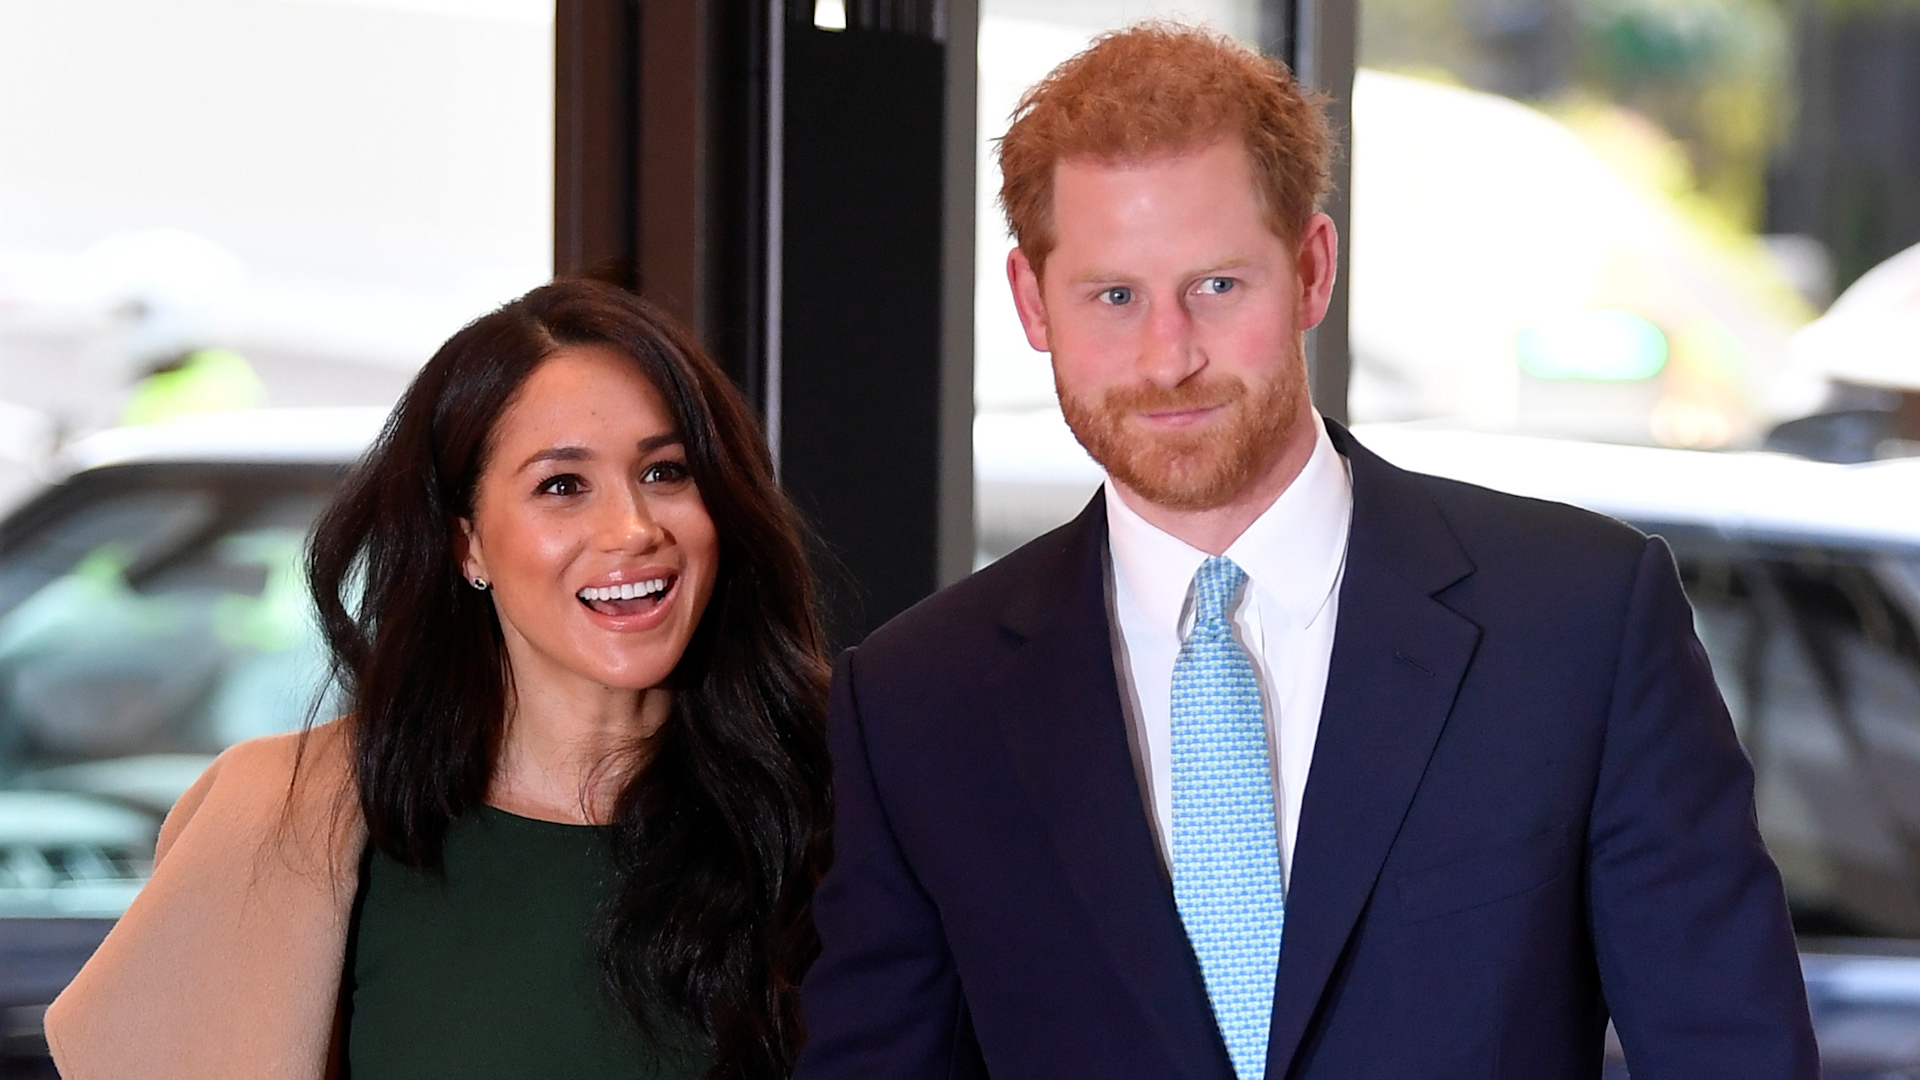 Prince Harry and Meghan Markle Don't Regret Any Of Their Decisions, Royal Author Says